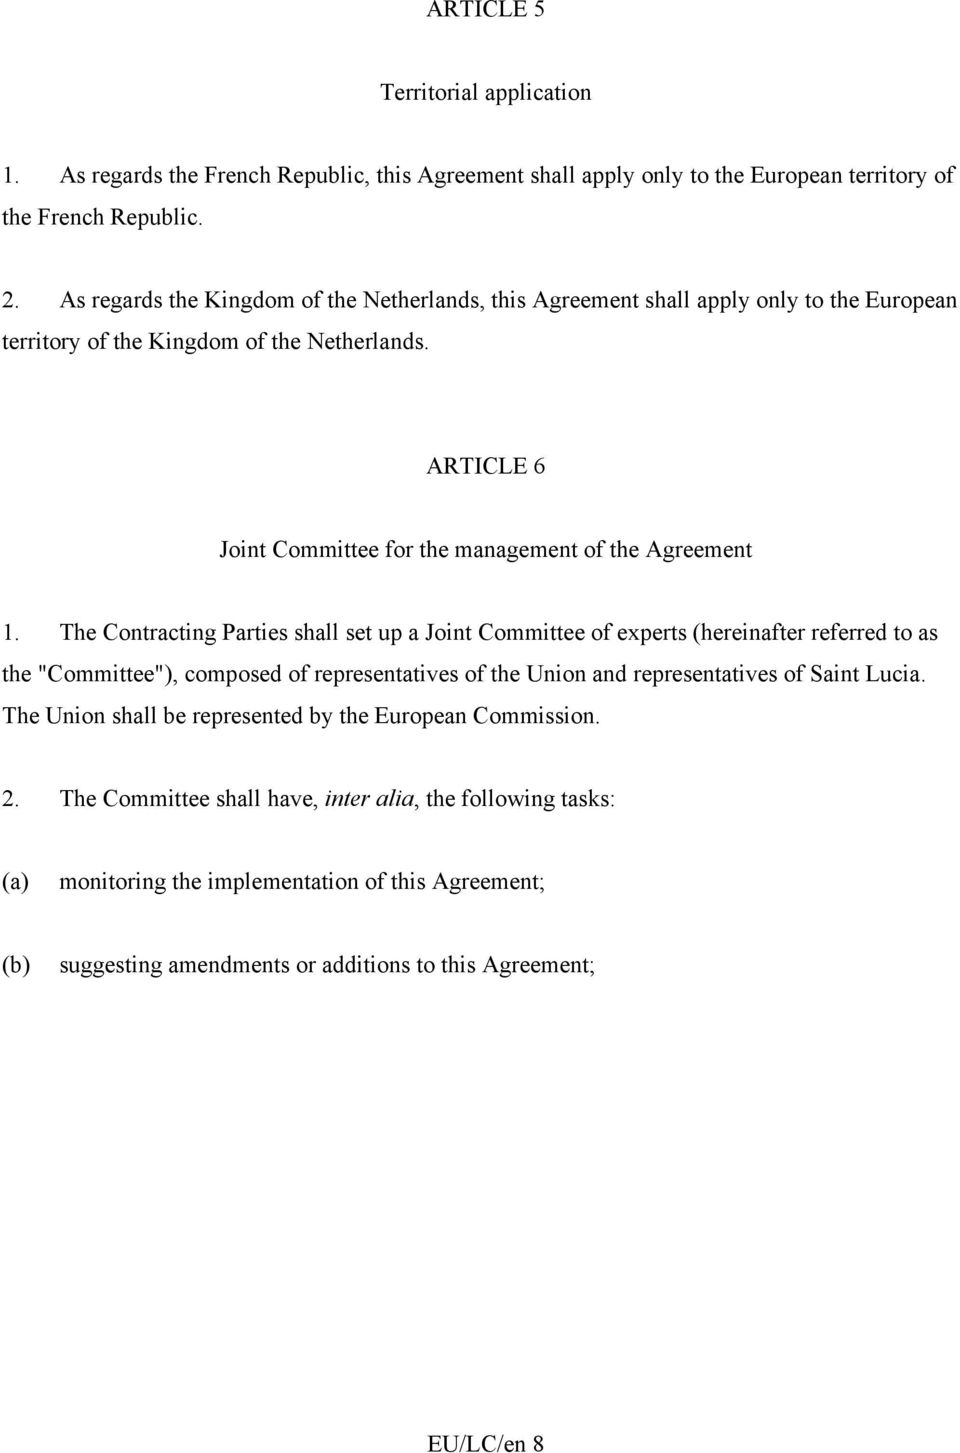 ARTICLE 6 Joint Committee for the management of the Agreement 1.